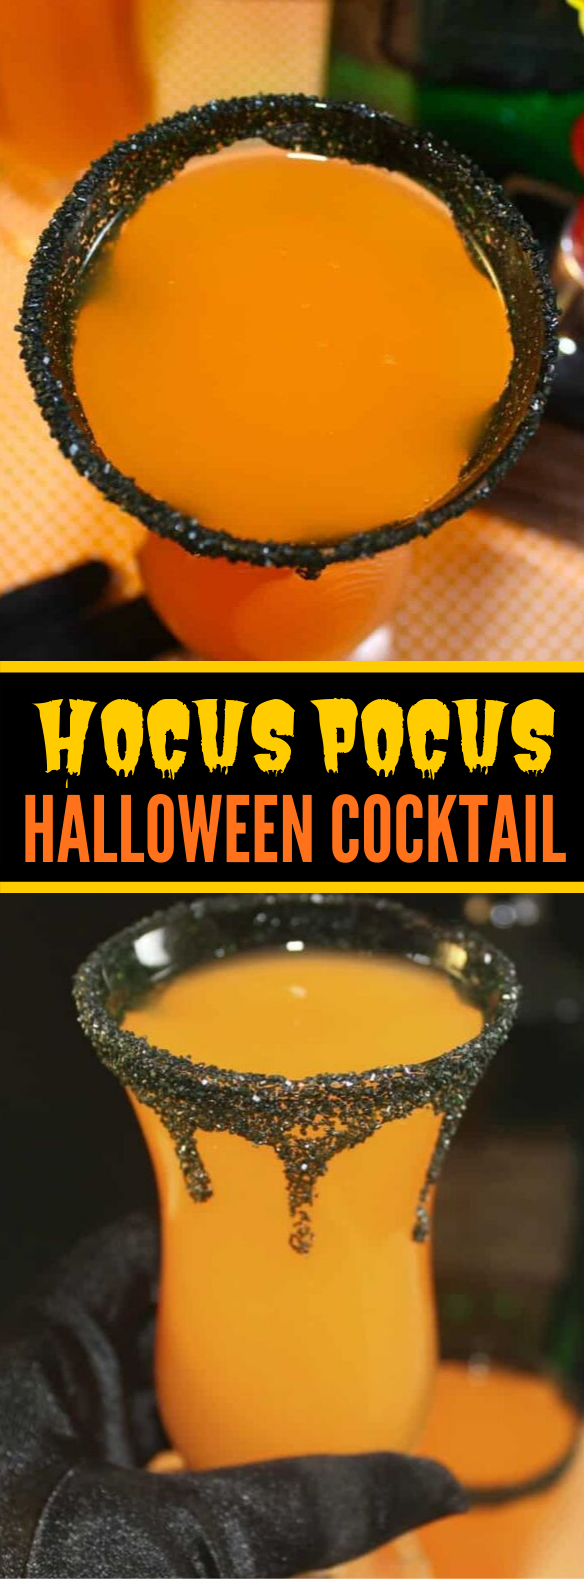 HOCUS POCUS HALLOWEEN COCKTAIL #drinks #nonalcoholic